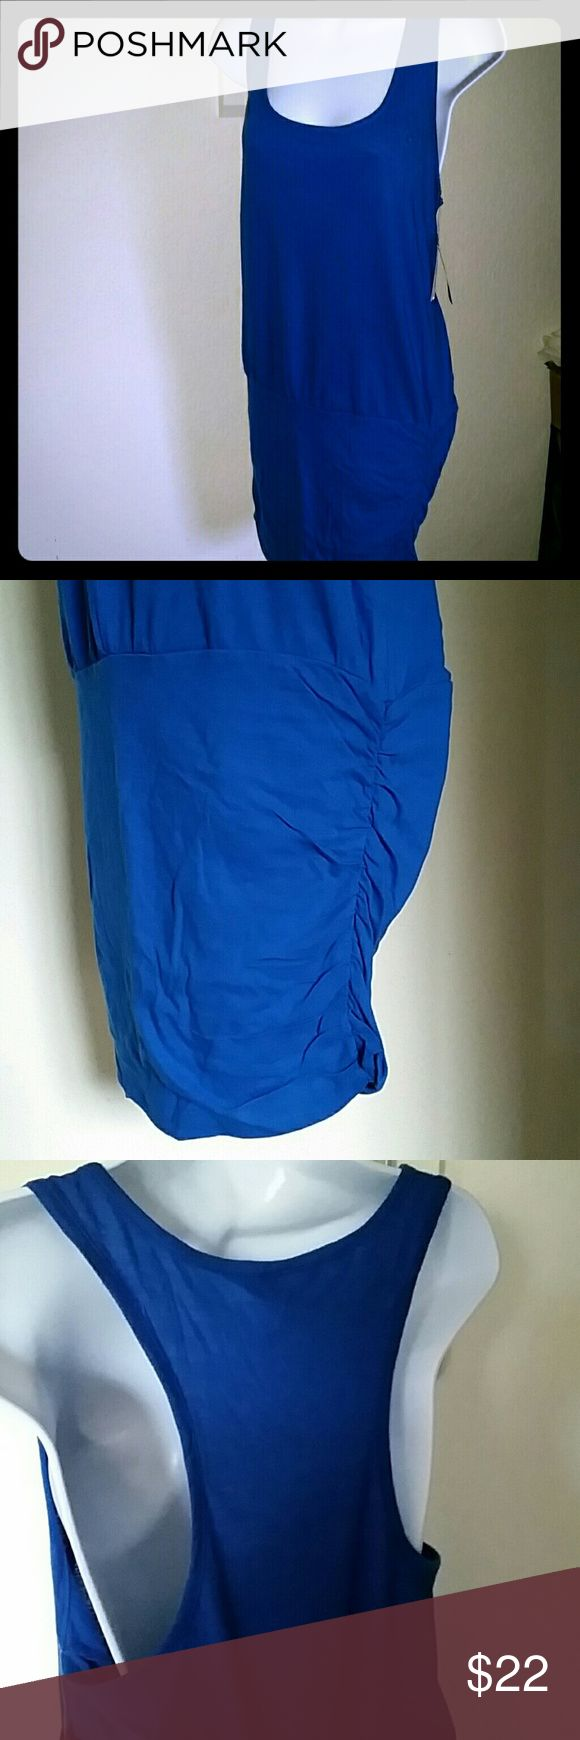 Polo Ralph Lauren women cover up dress Cotton cover up dress I do have bundle discount, other than that all prices are firm! Polo by Ralph Lauren Dresses Mini